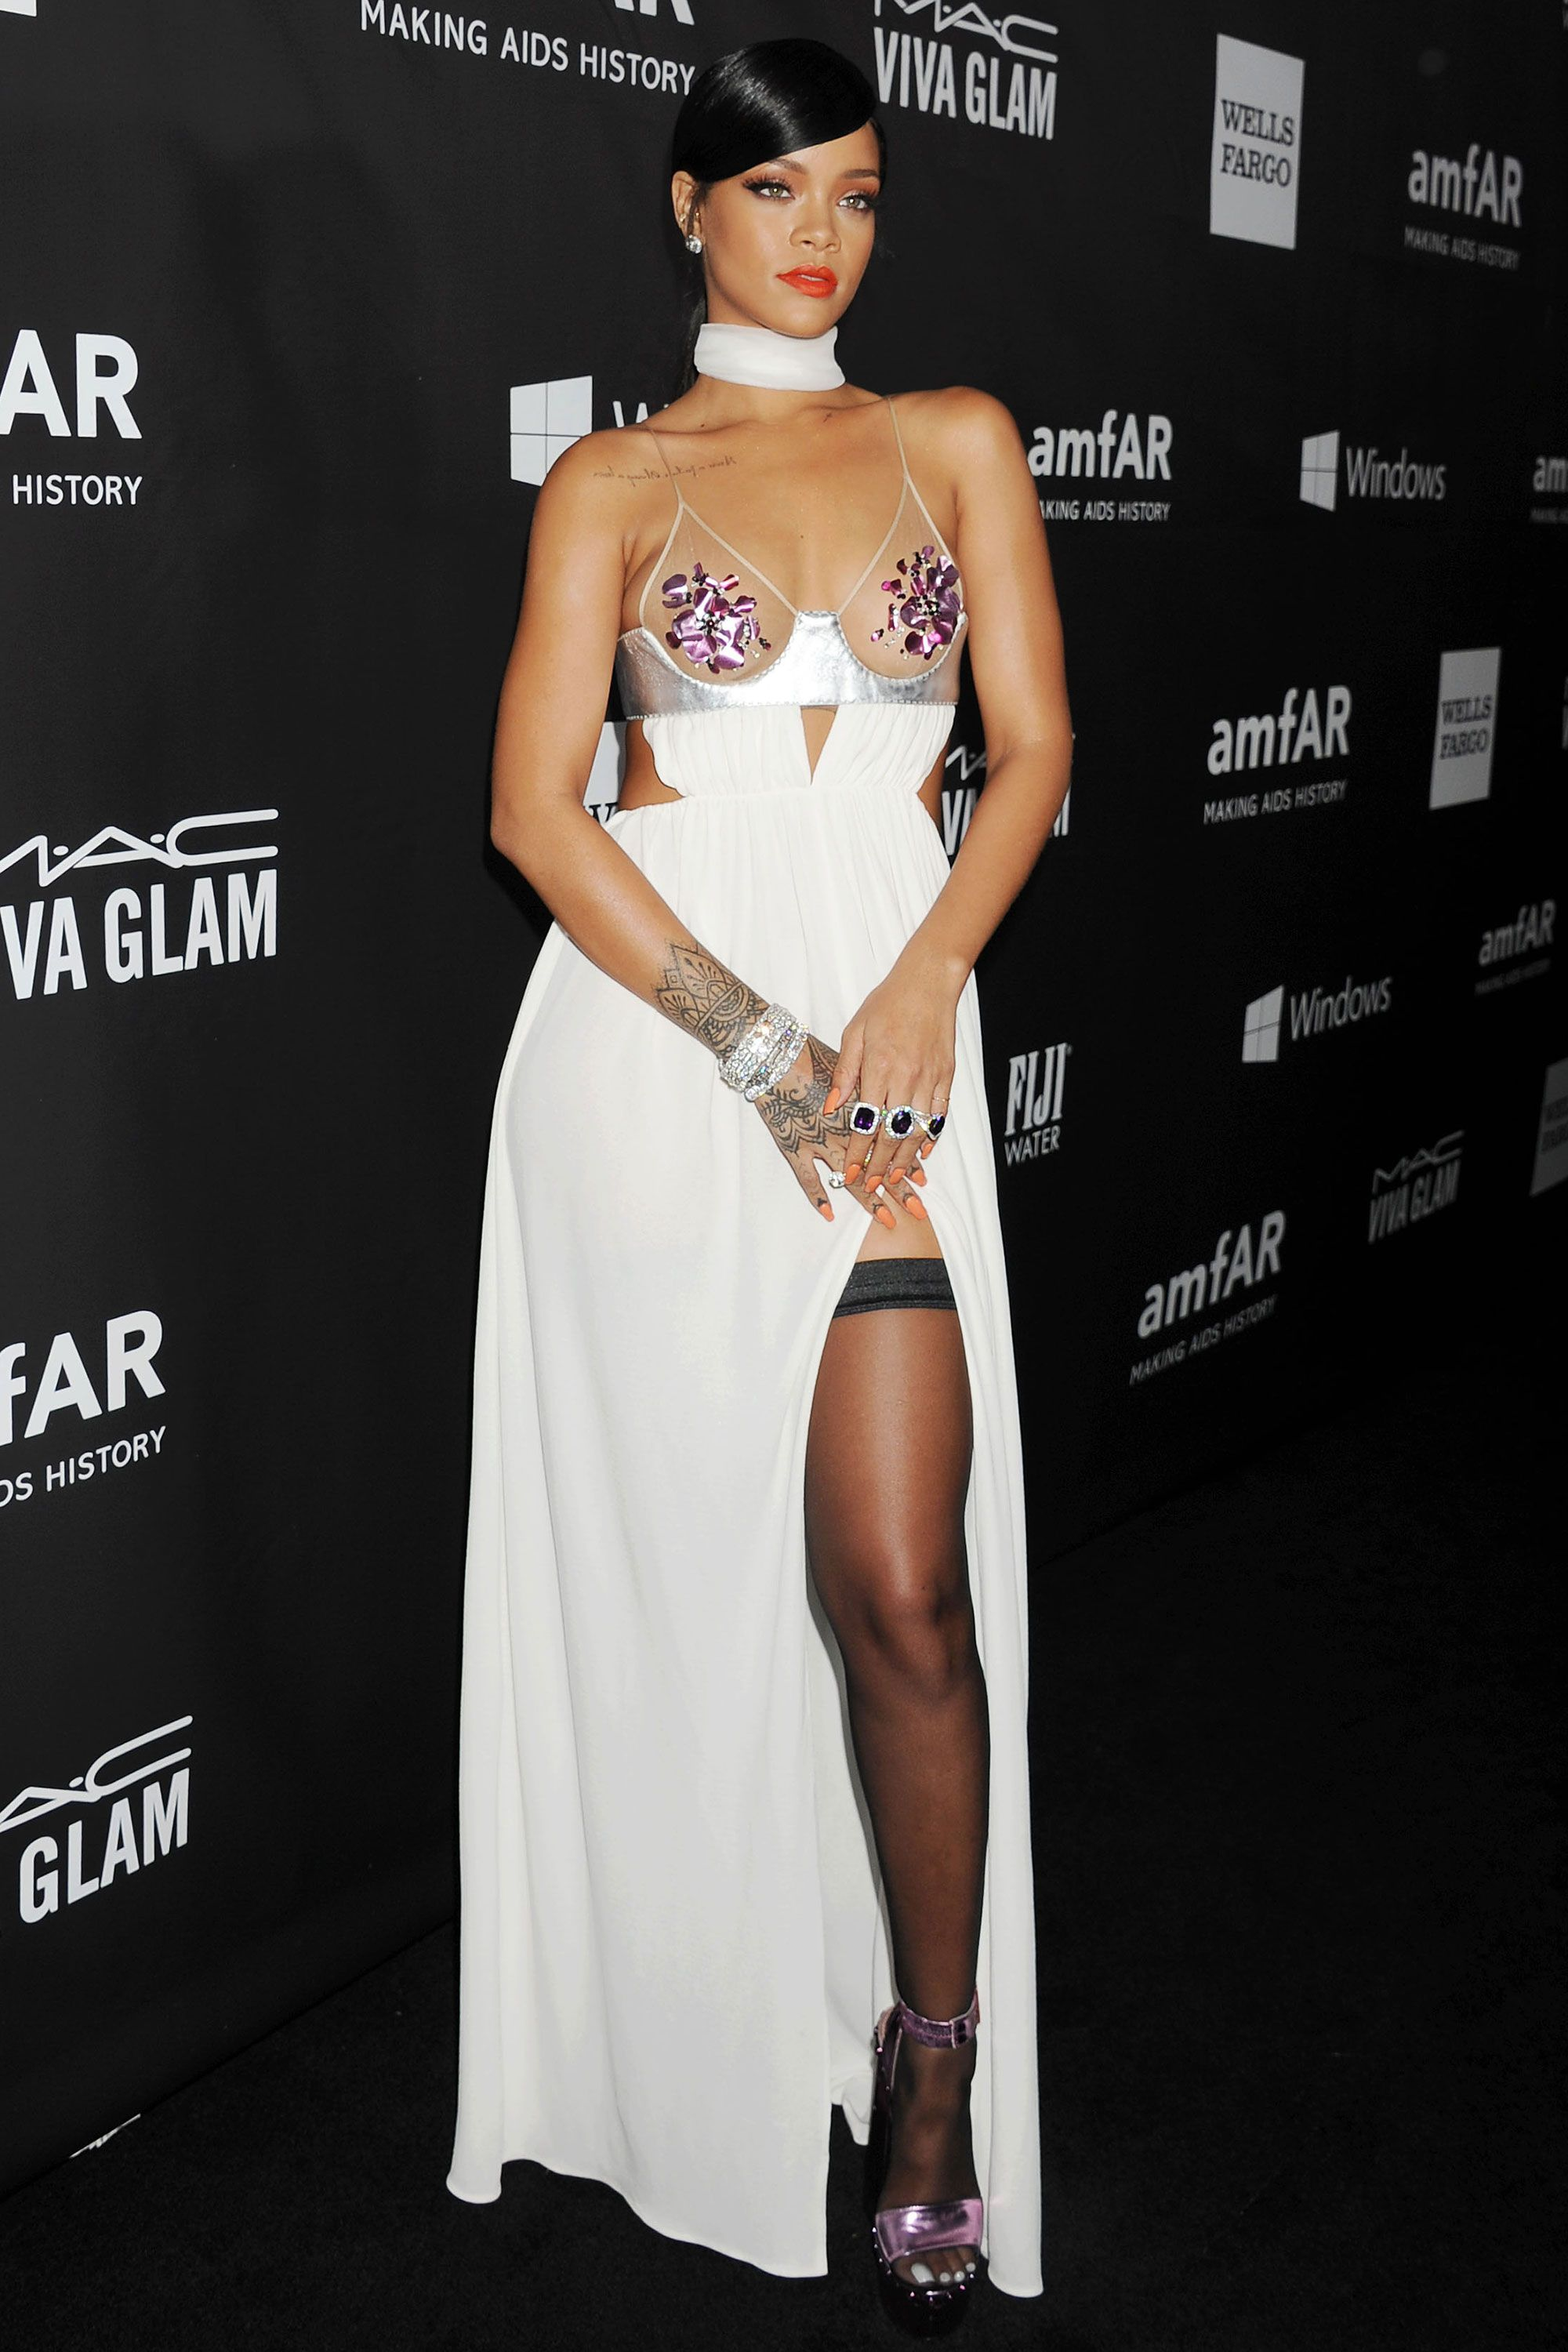 fc86a5c4c Celebrity Red Carpet Poses with High Slit - The Best Celebrity Thigh-High  Slit Poses